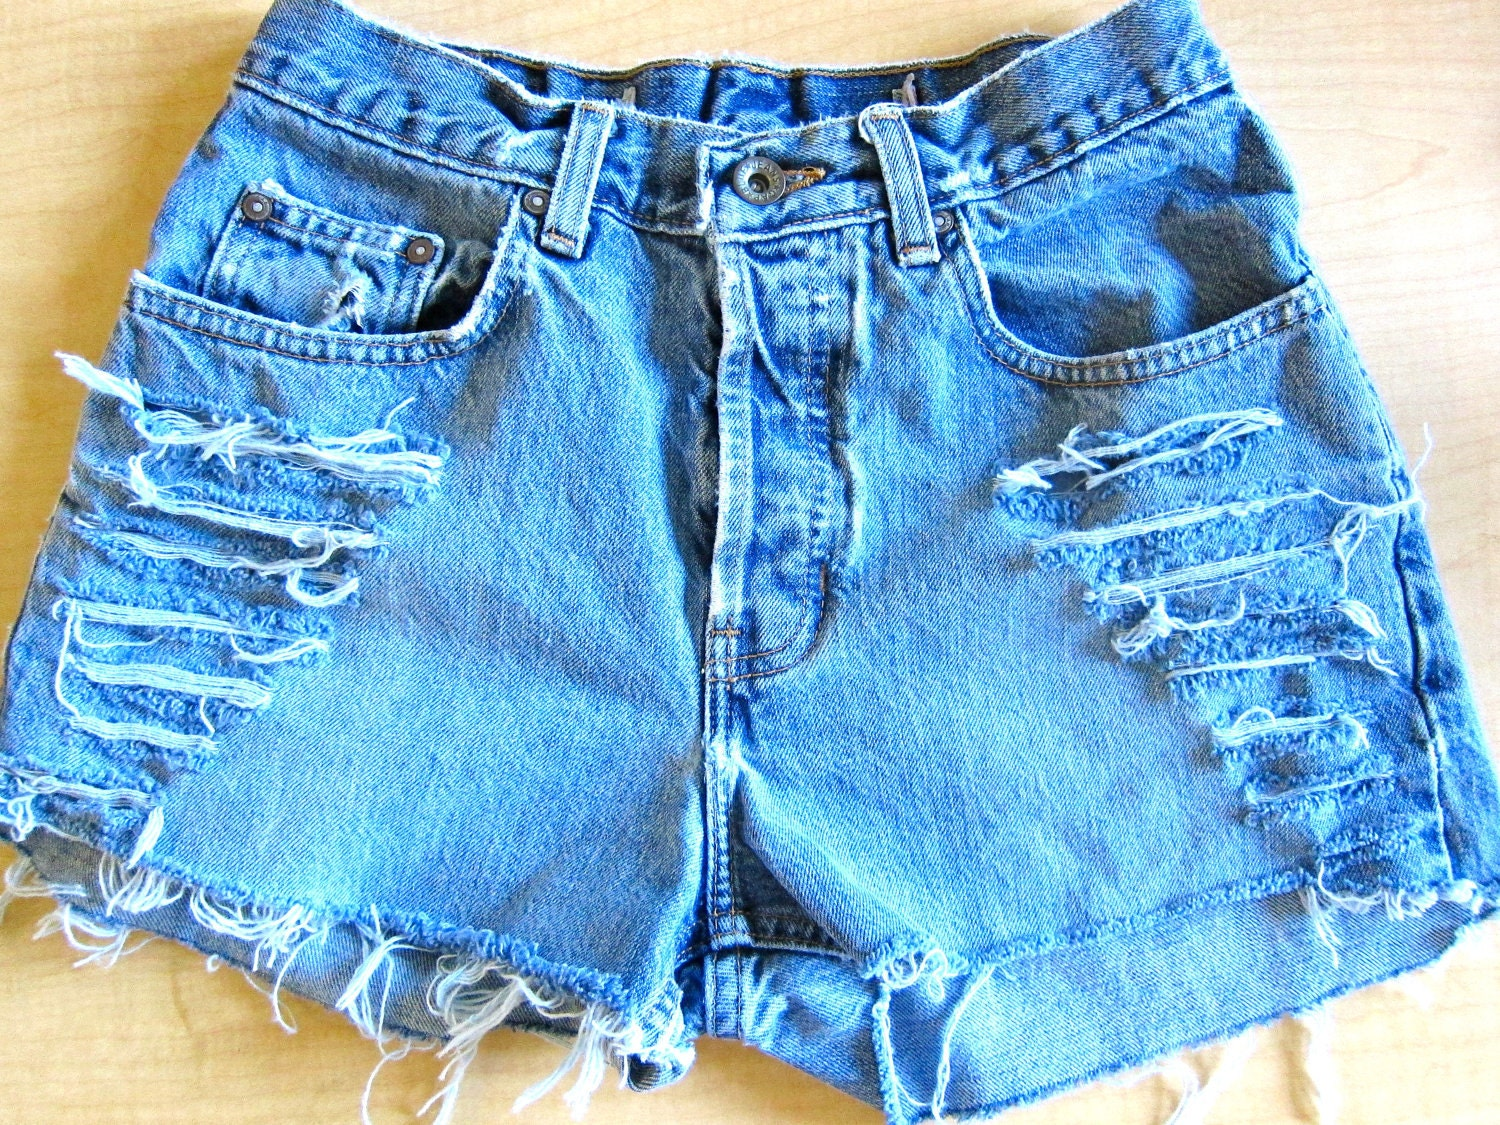 Vintage High Waisted Ripped Jean Shorts